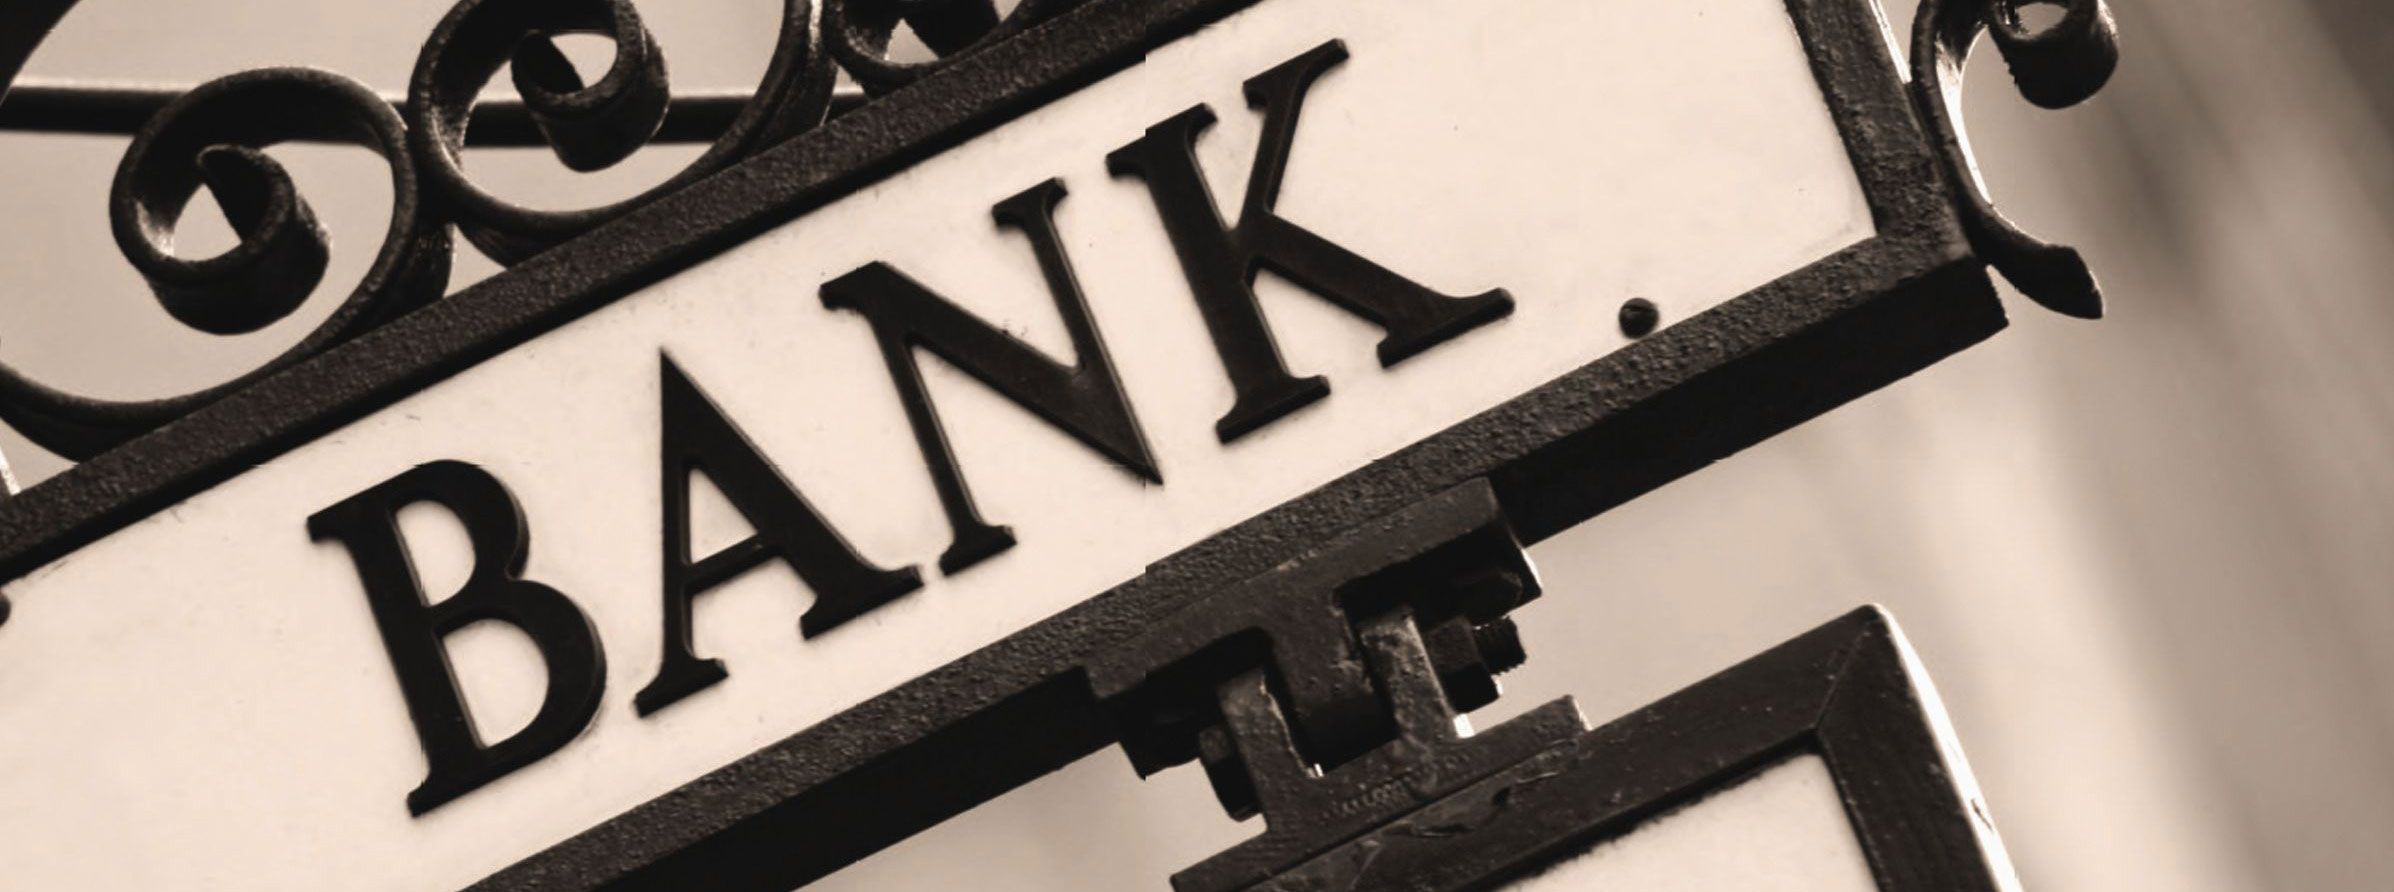 The Top 10 Biggest Banks in Europe